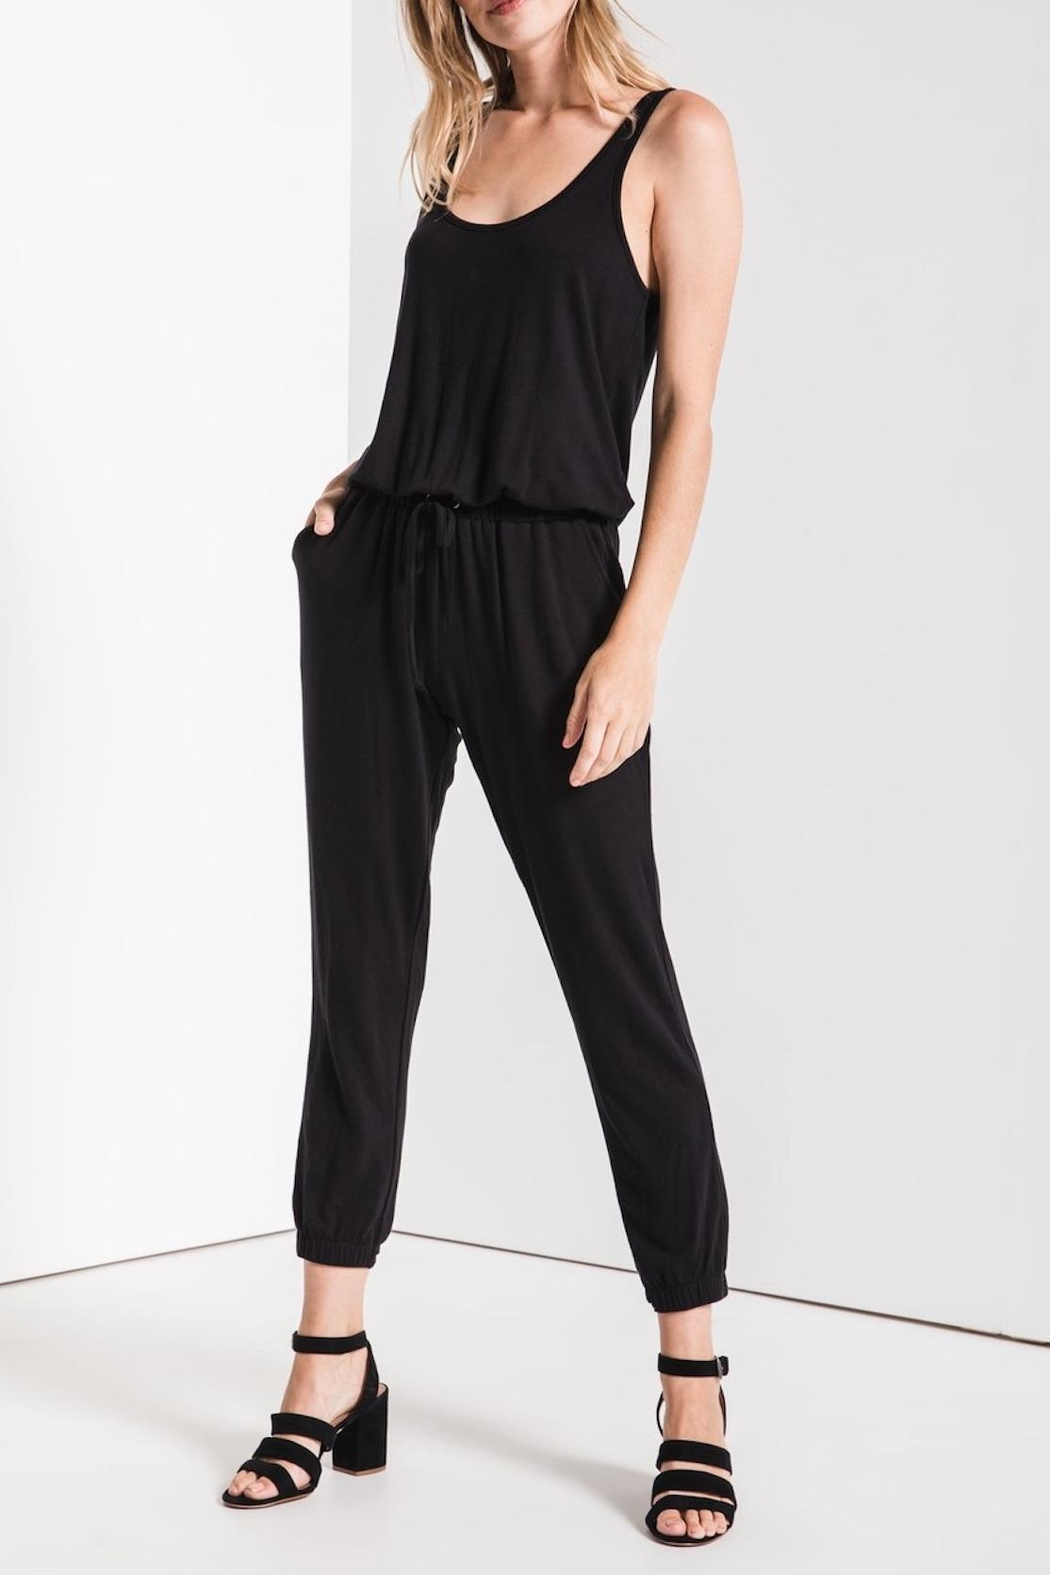 Apricot Lane Tank Jogger Jumpsuit - Front Cropped Image